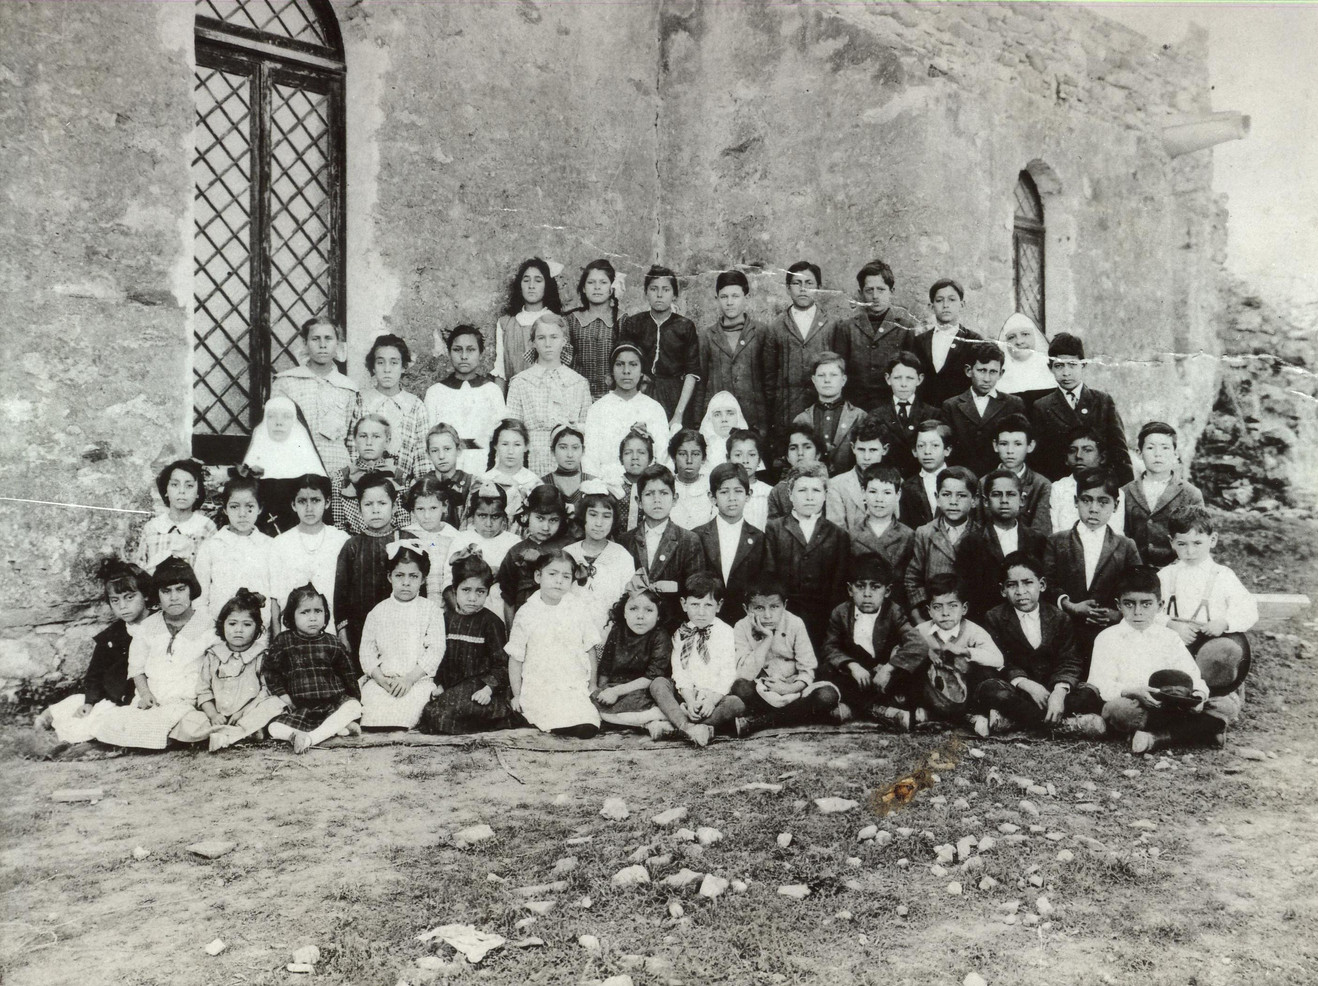 In 1875, Incarnate Word Sisters began teaching in public and private schools. By the early 1920s, Incarnate Word Sisters were teaching in more than 30 public and parochial (parish) schools in Texas, Missouri, and Oklahoma.  (pictured: School at Mission Espada, San Antonio, 1916)